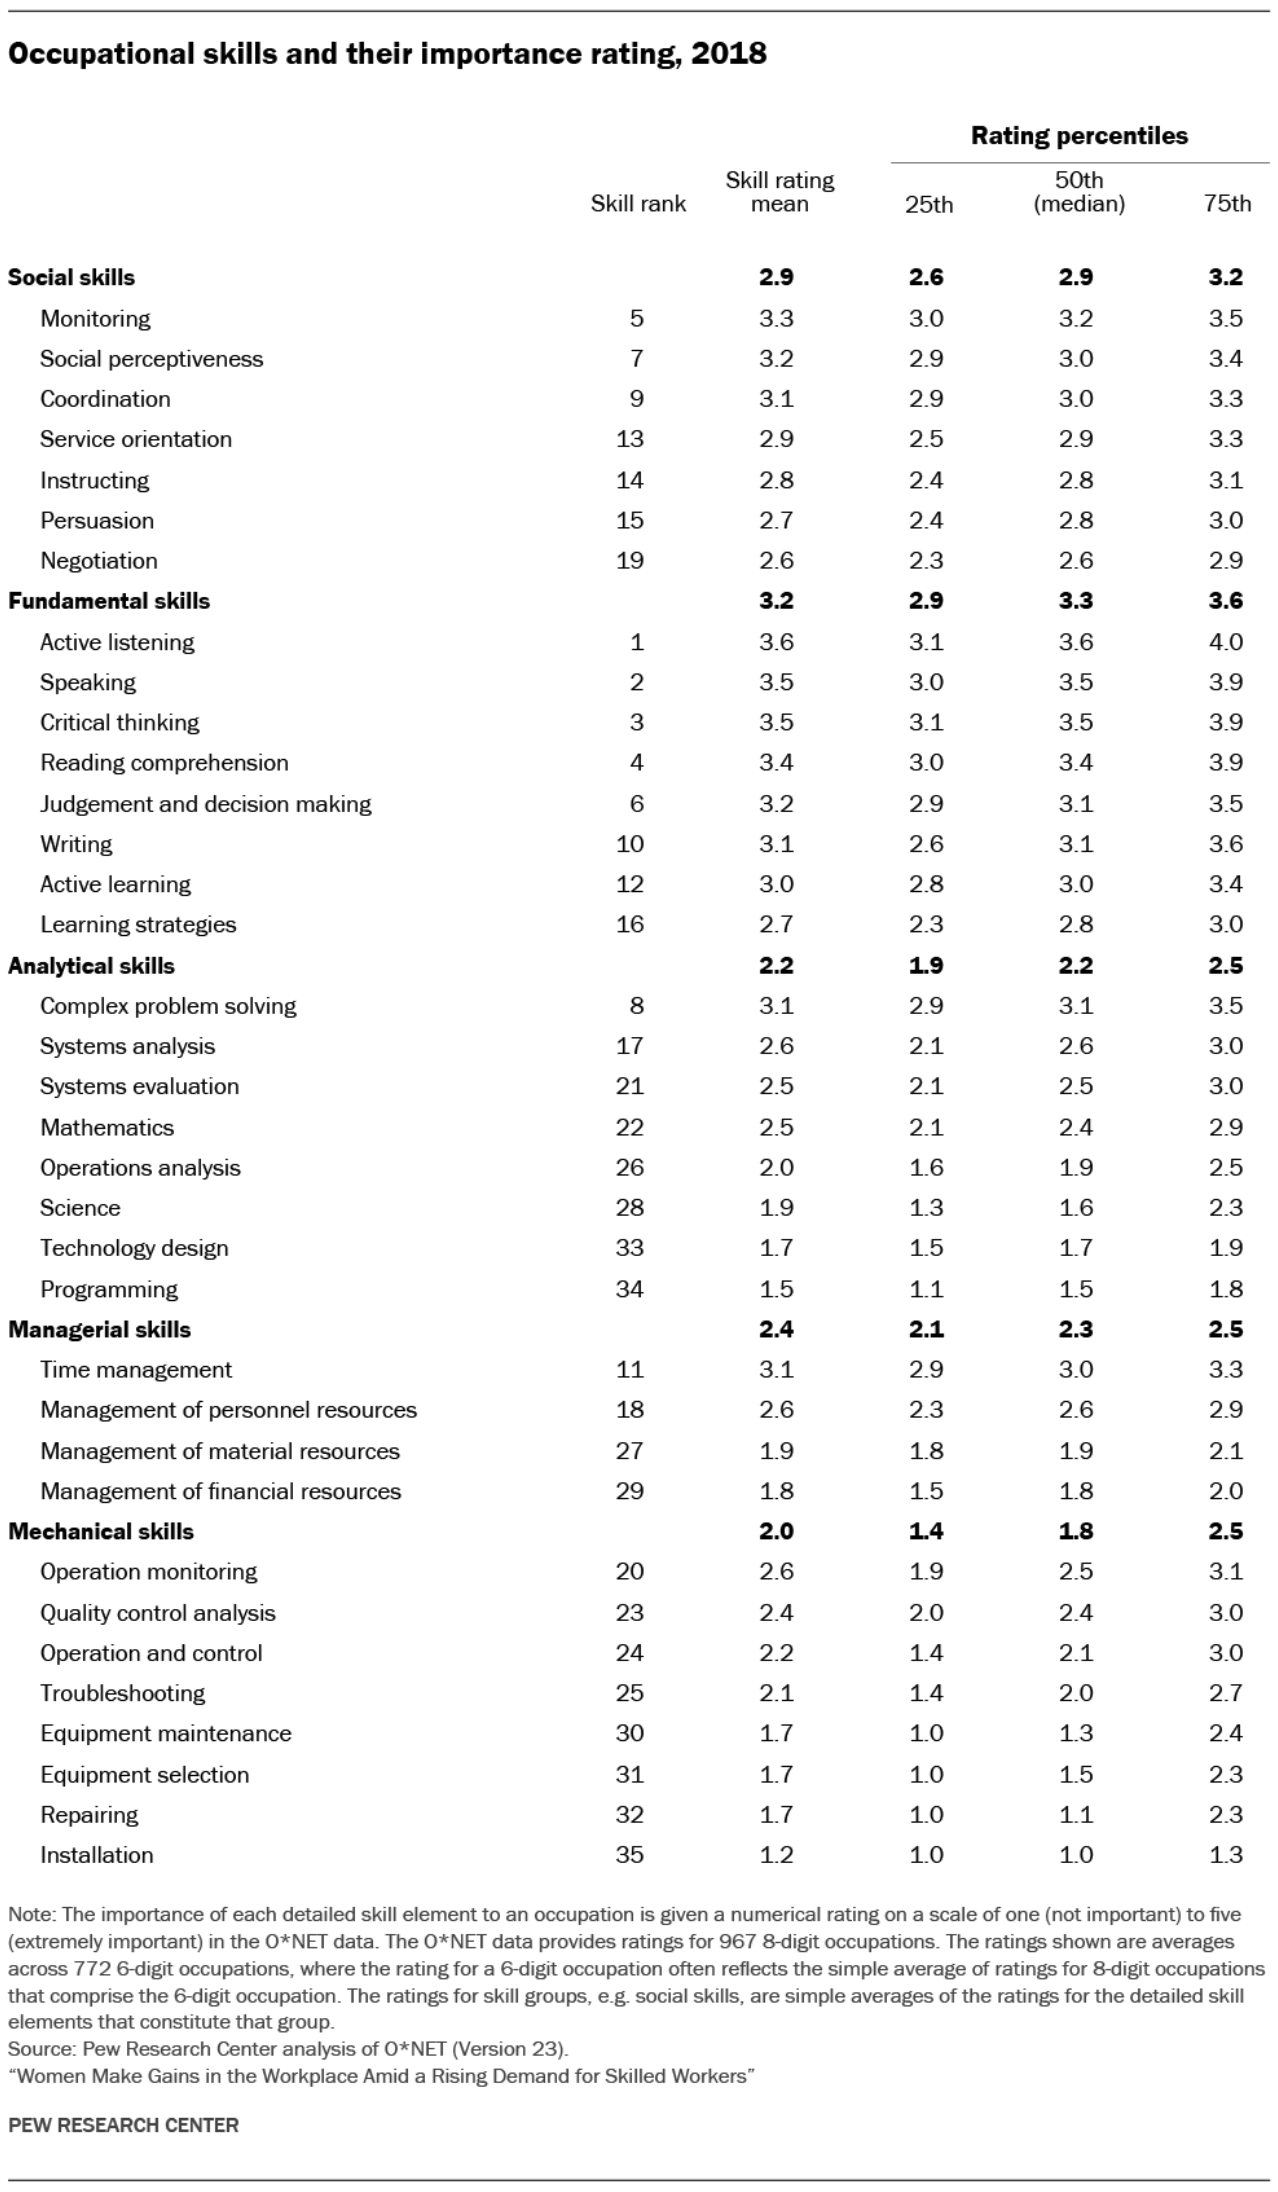 Occupational skills and their importance rating, 2018